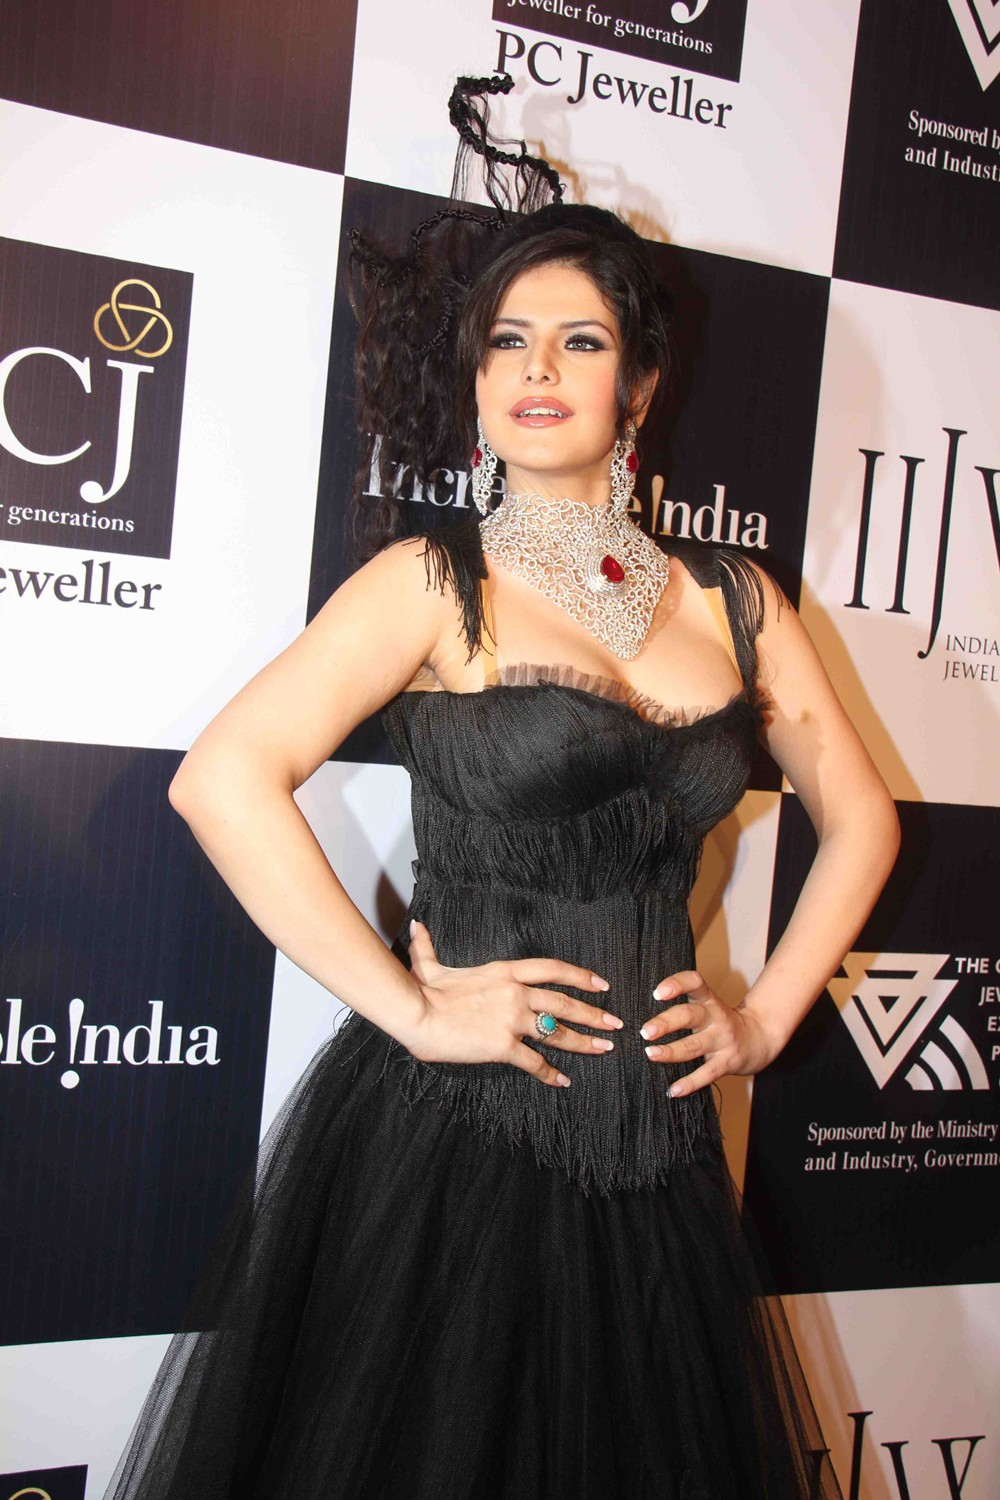 Zarine Khan Ramp Walk At IIJW Day Two Show HQ 11 images  AbjMKh89